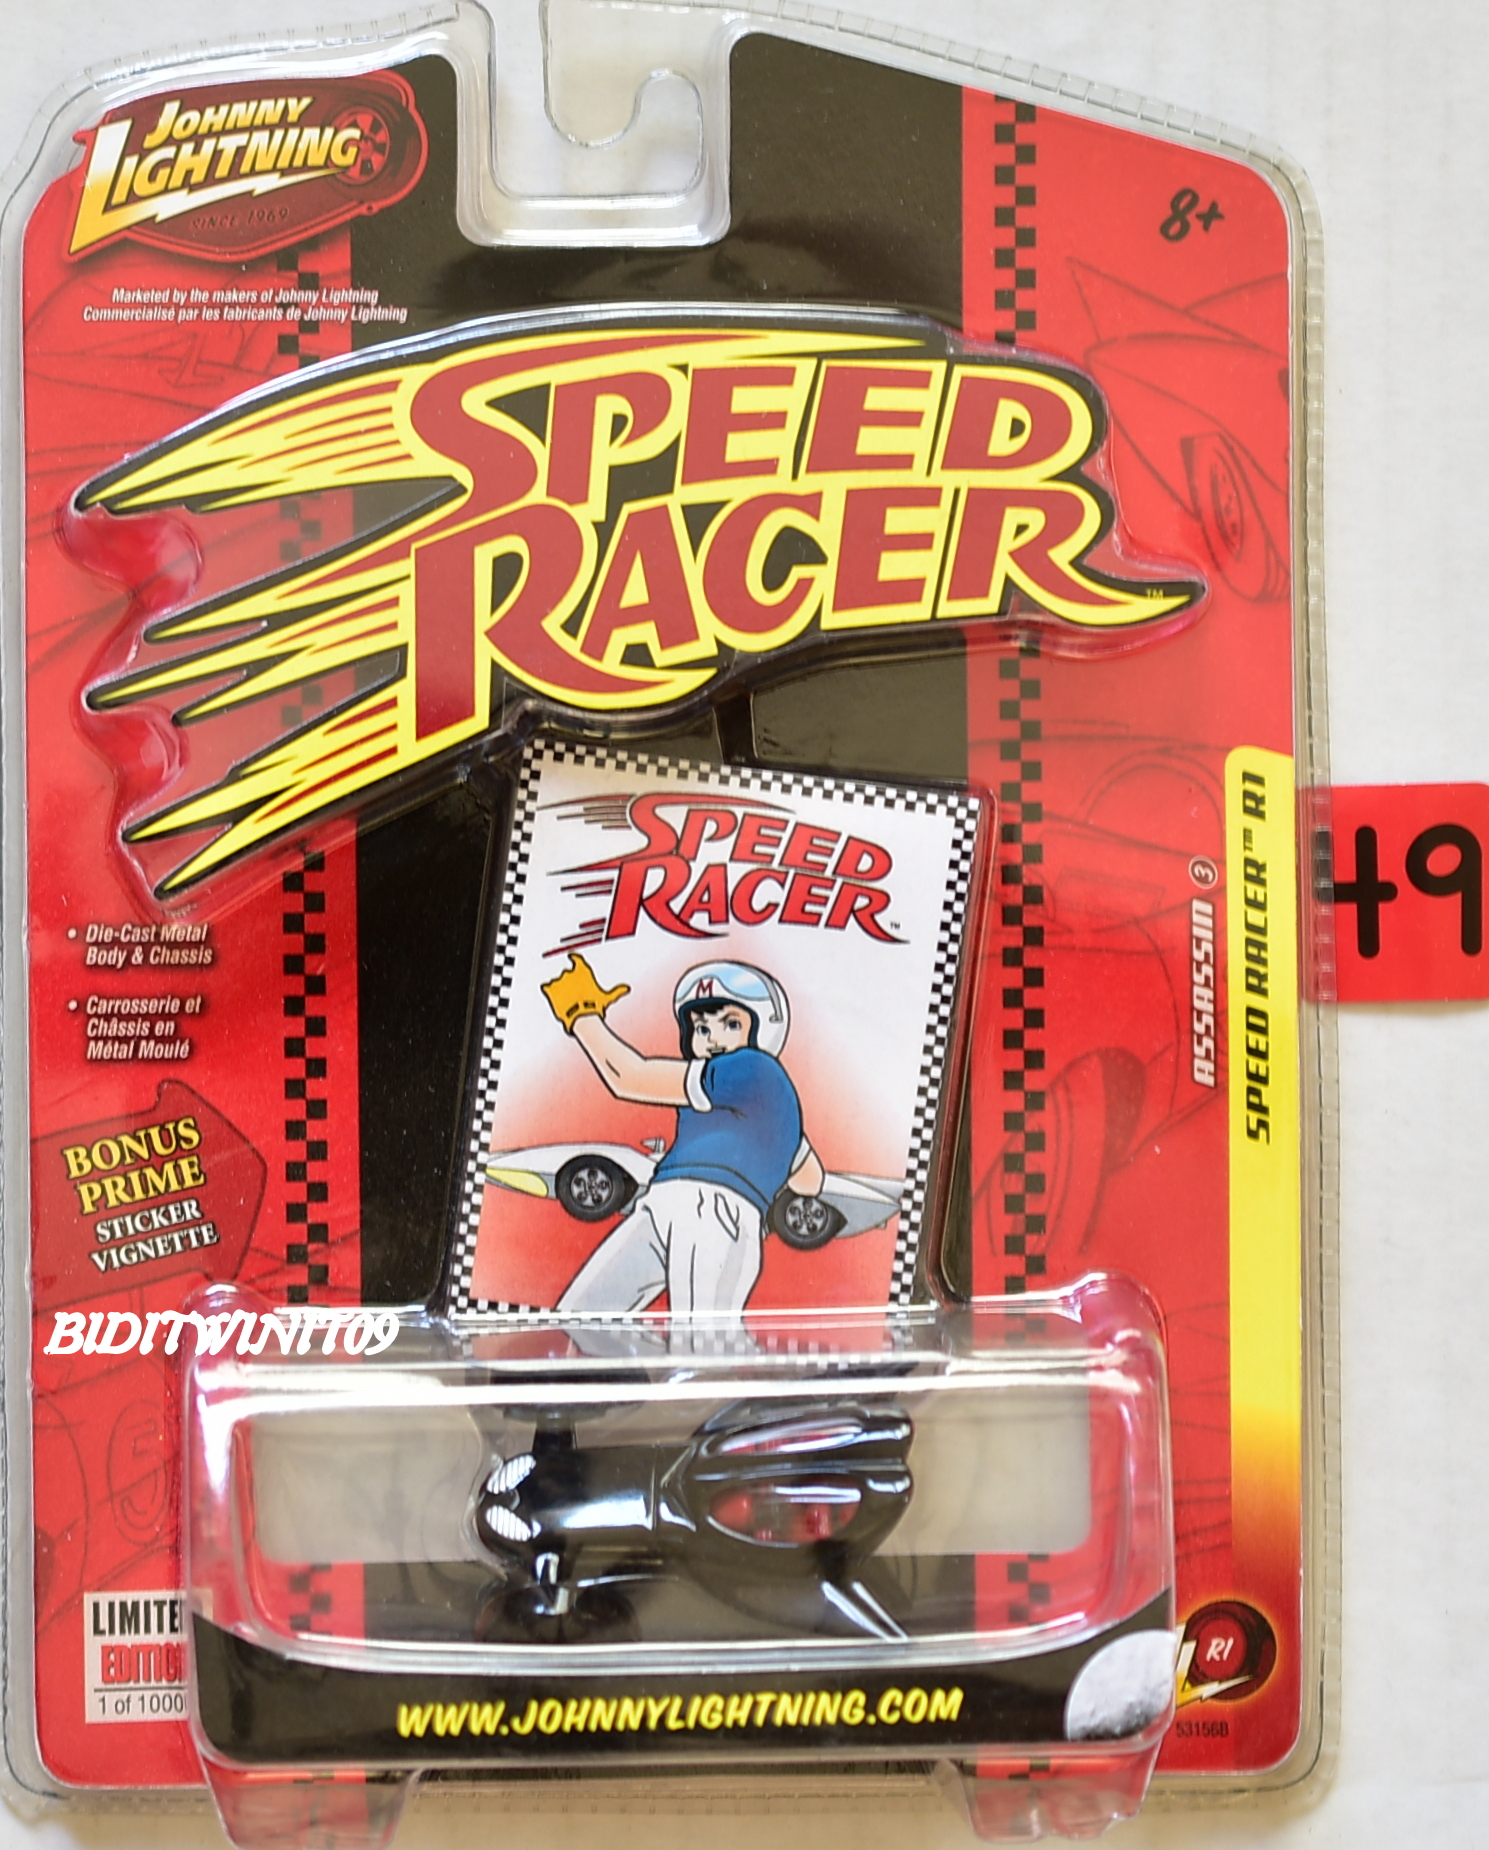 JOHNNY LIGHTNING SPEED RACER R1 - THE ASSASSIN BONUS PRIME STICKER